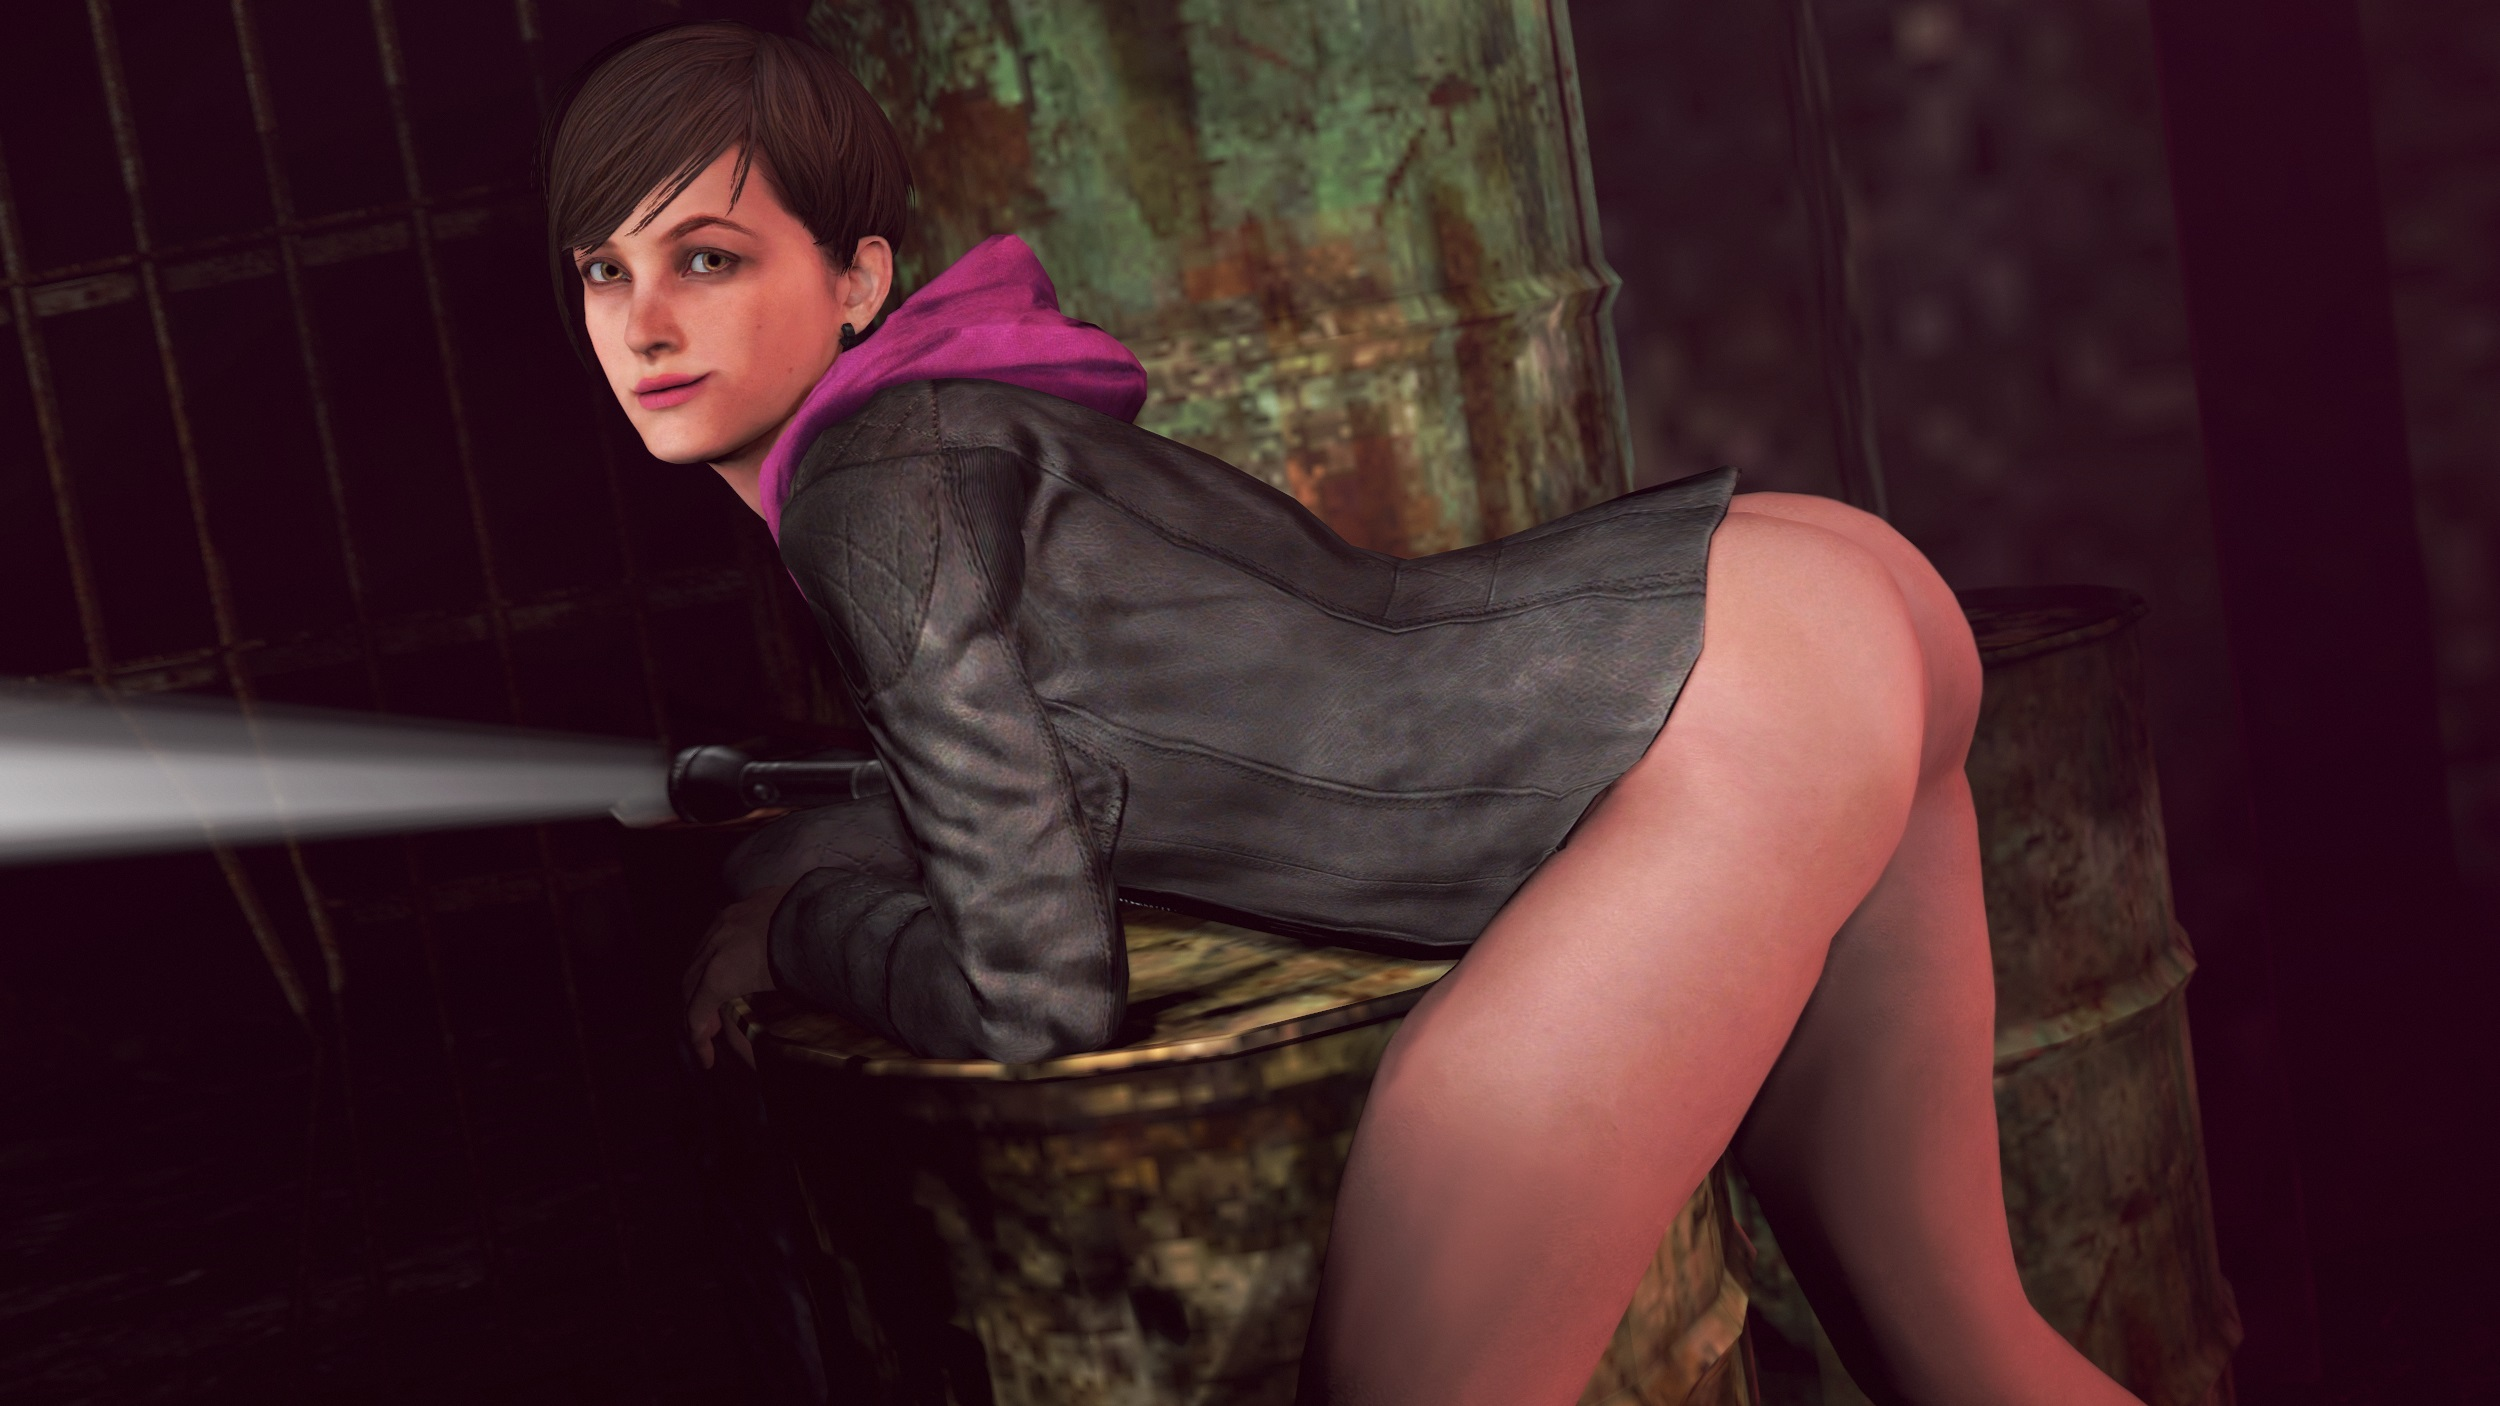 Sexy naked lesbian league of legends gifs erotic images